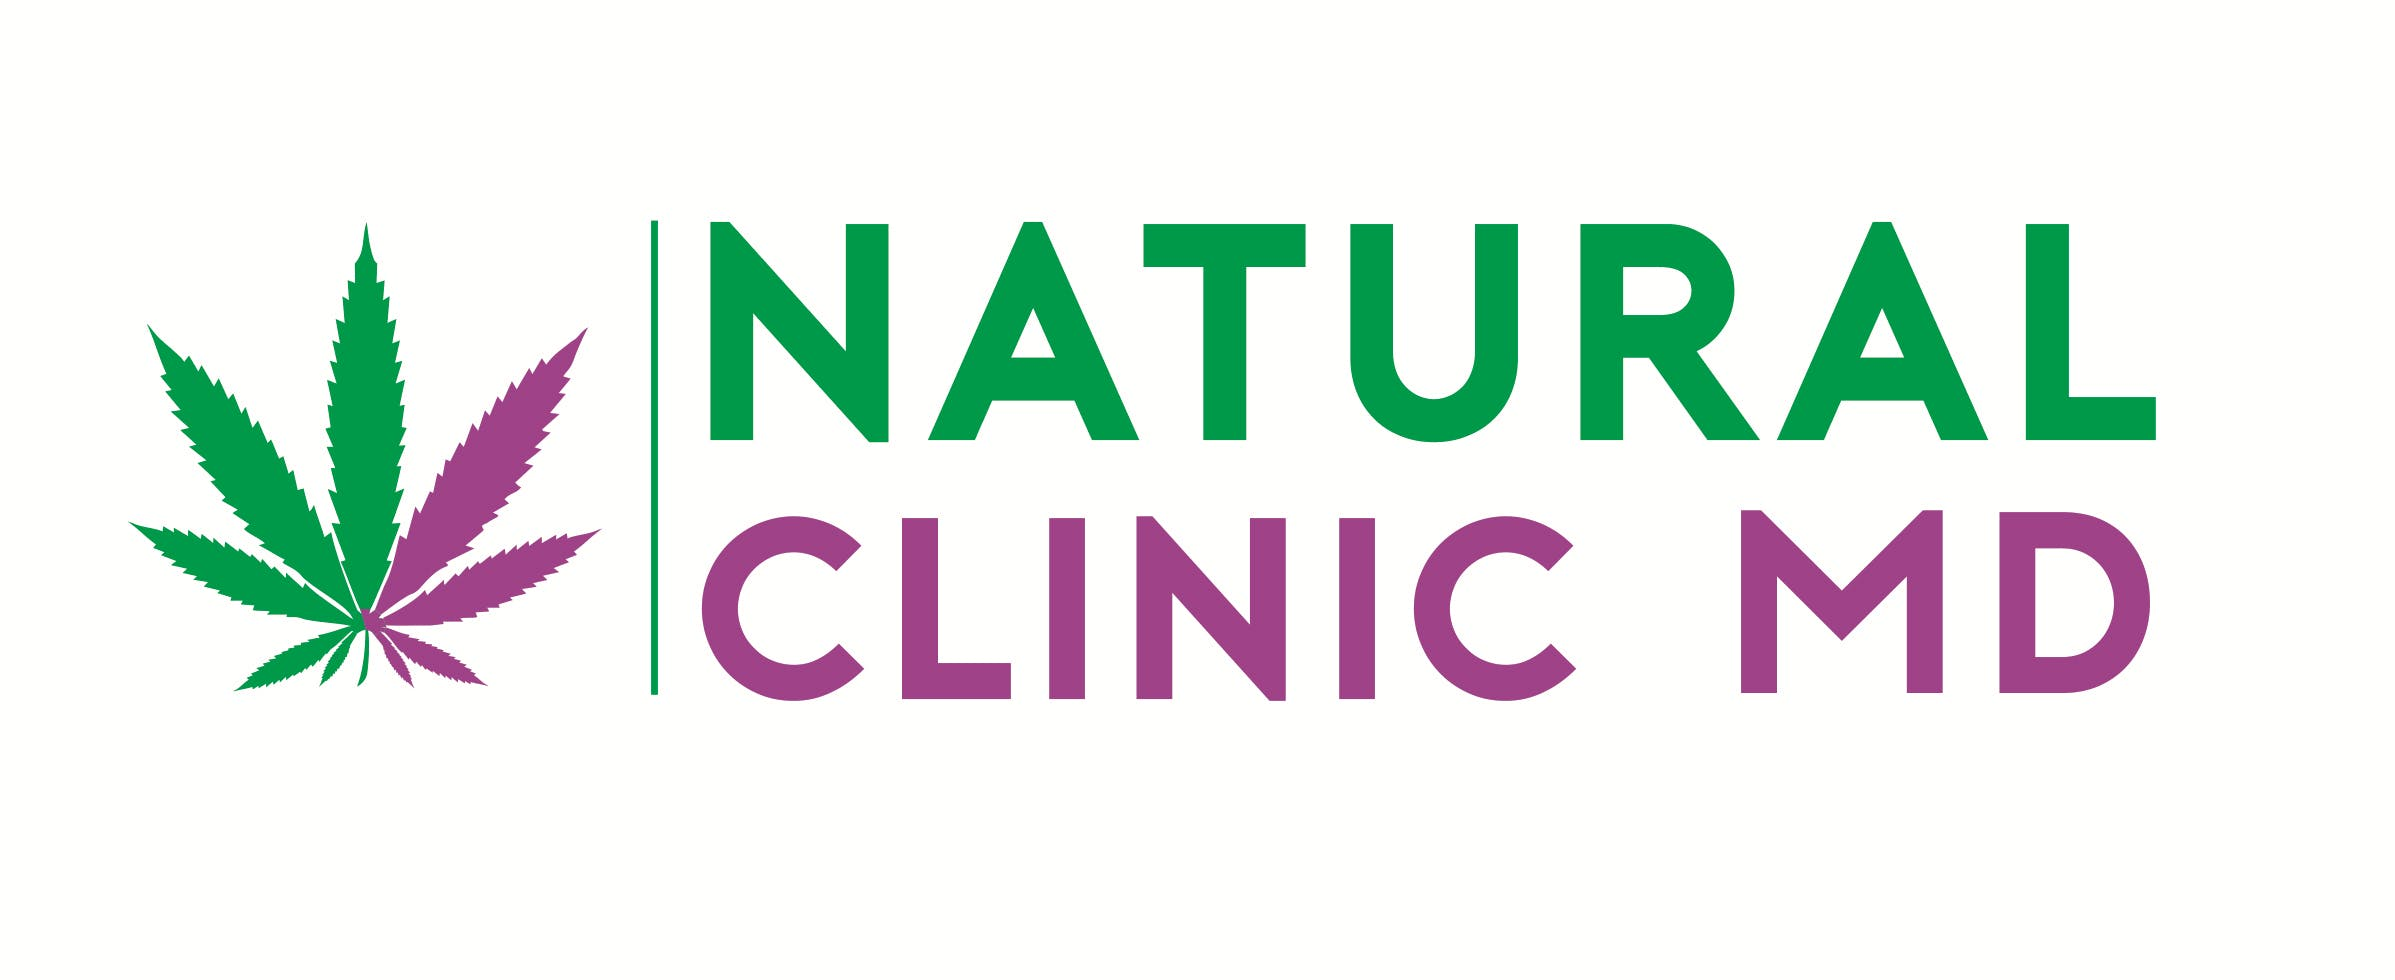 Natural Clinic MD